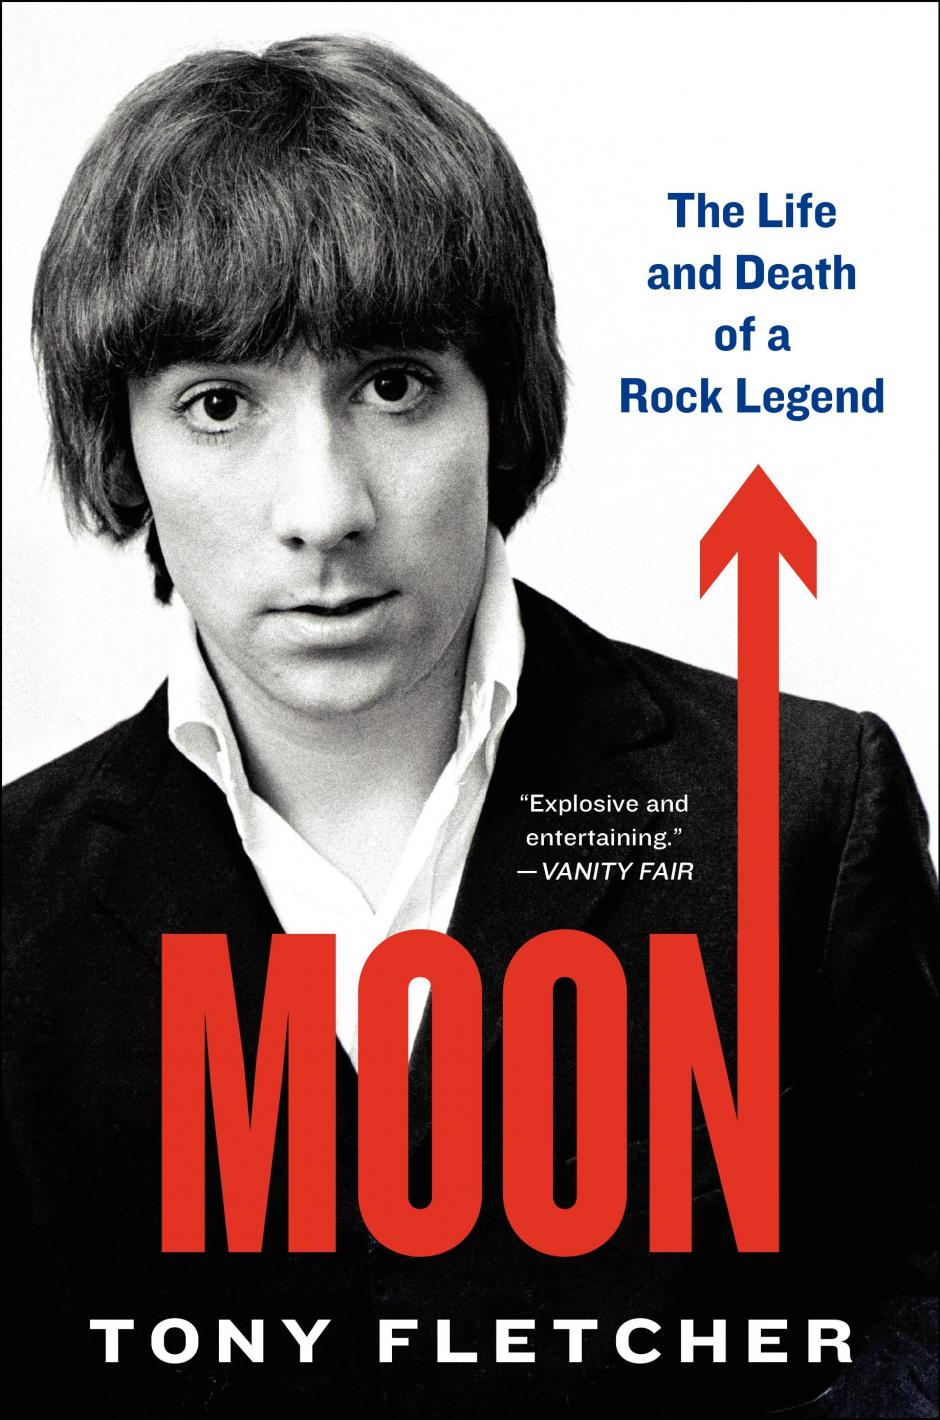 keith_moon_book_photo_0_1448046555.jpg